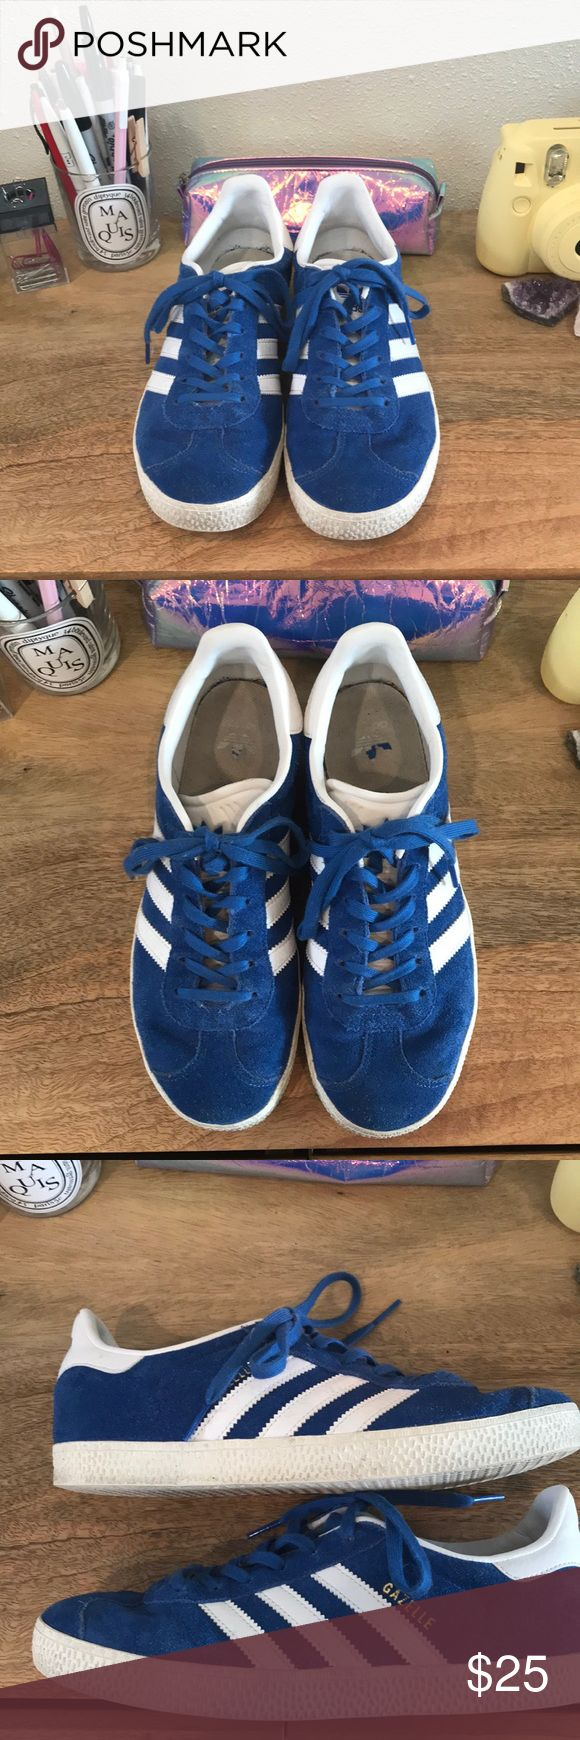 Adidas gazelles royal blue Royal blue gazelles. Kids size 5, fit like a women's 7.5. Light wear overall great condition! adidas Shoes Sneakers